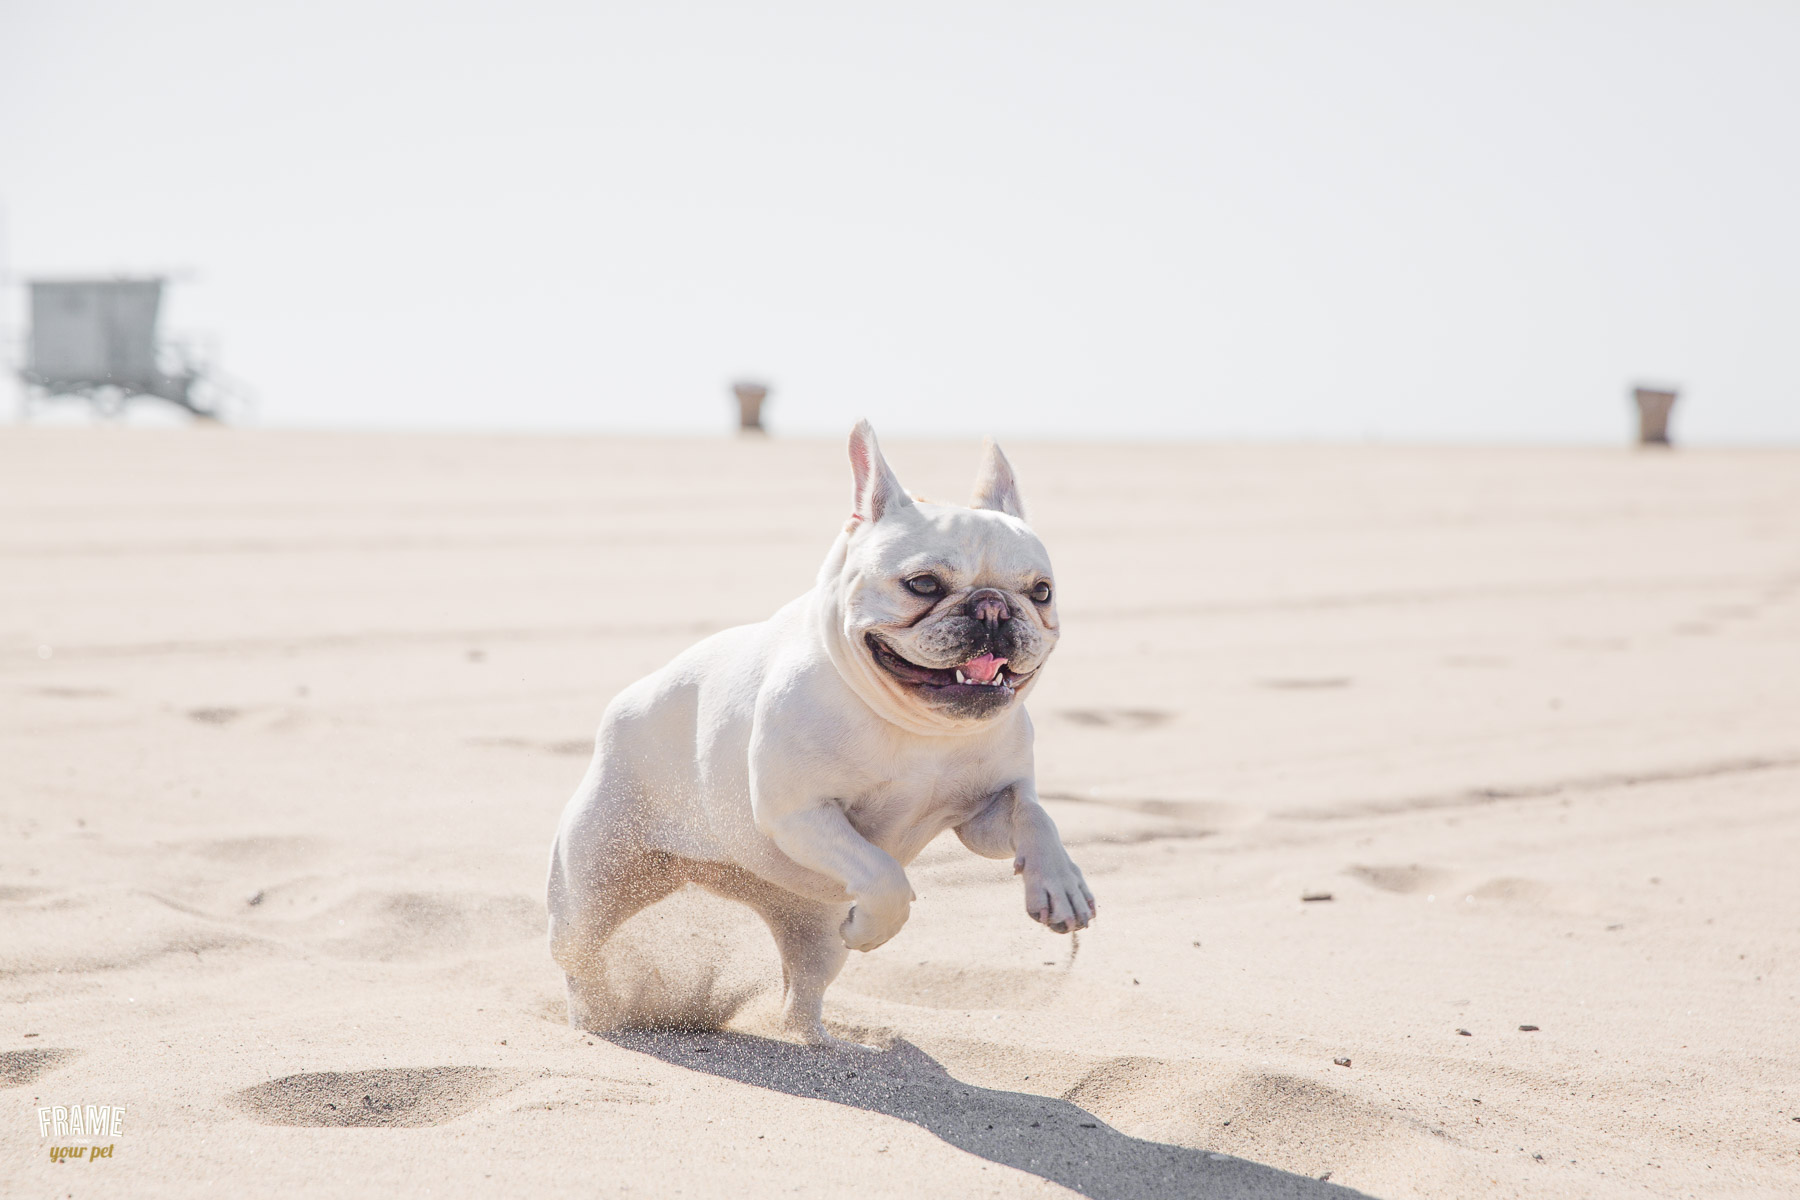 french-bulldog-running-on-beach